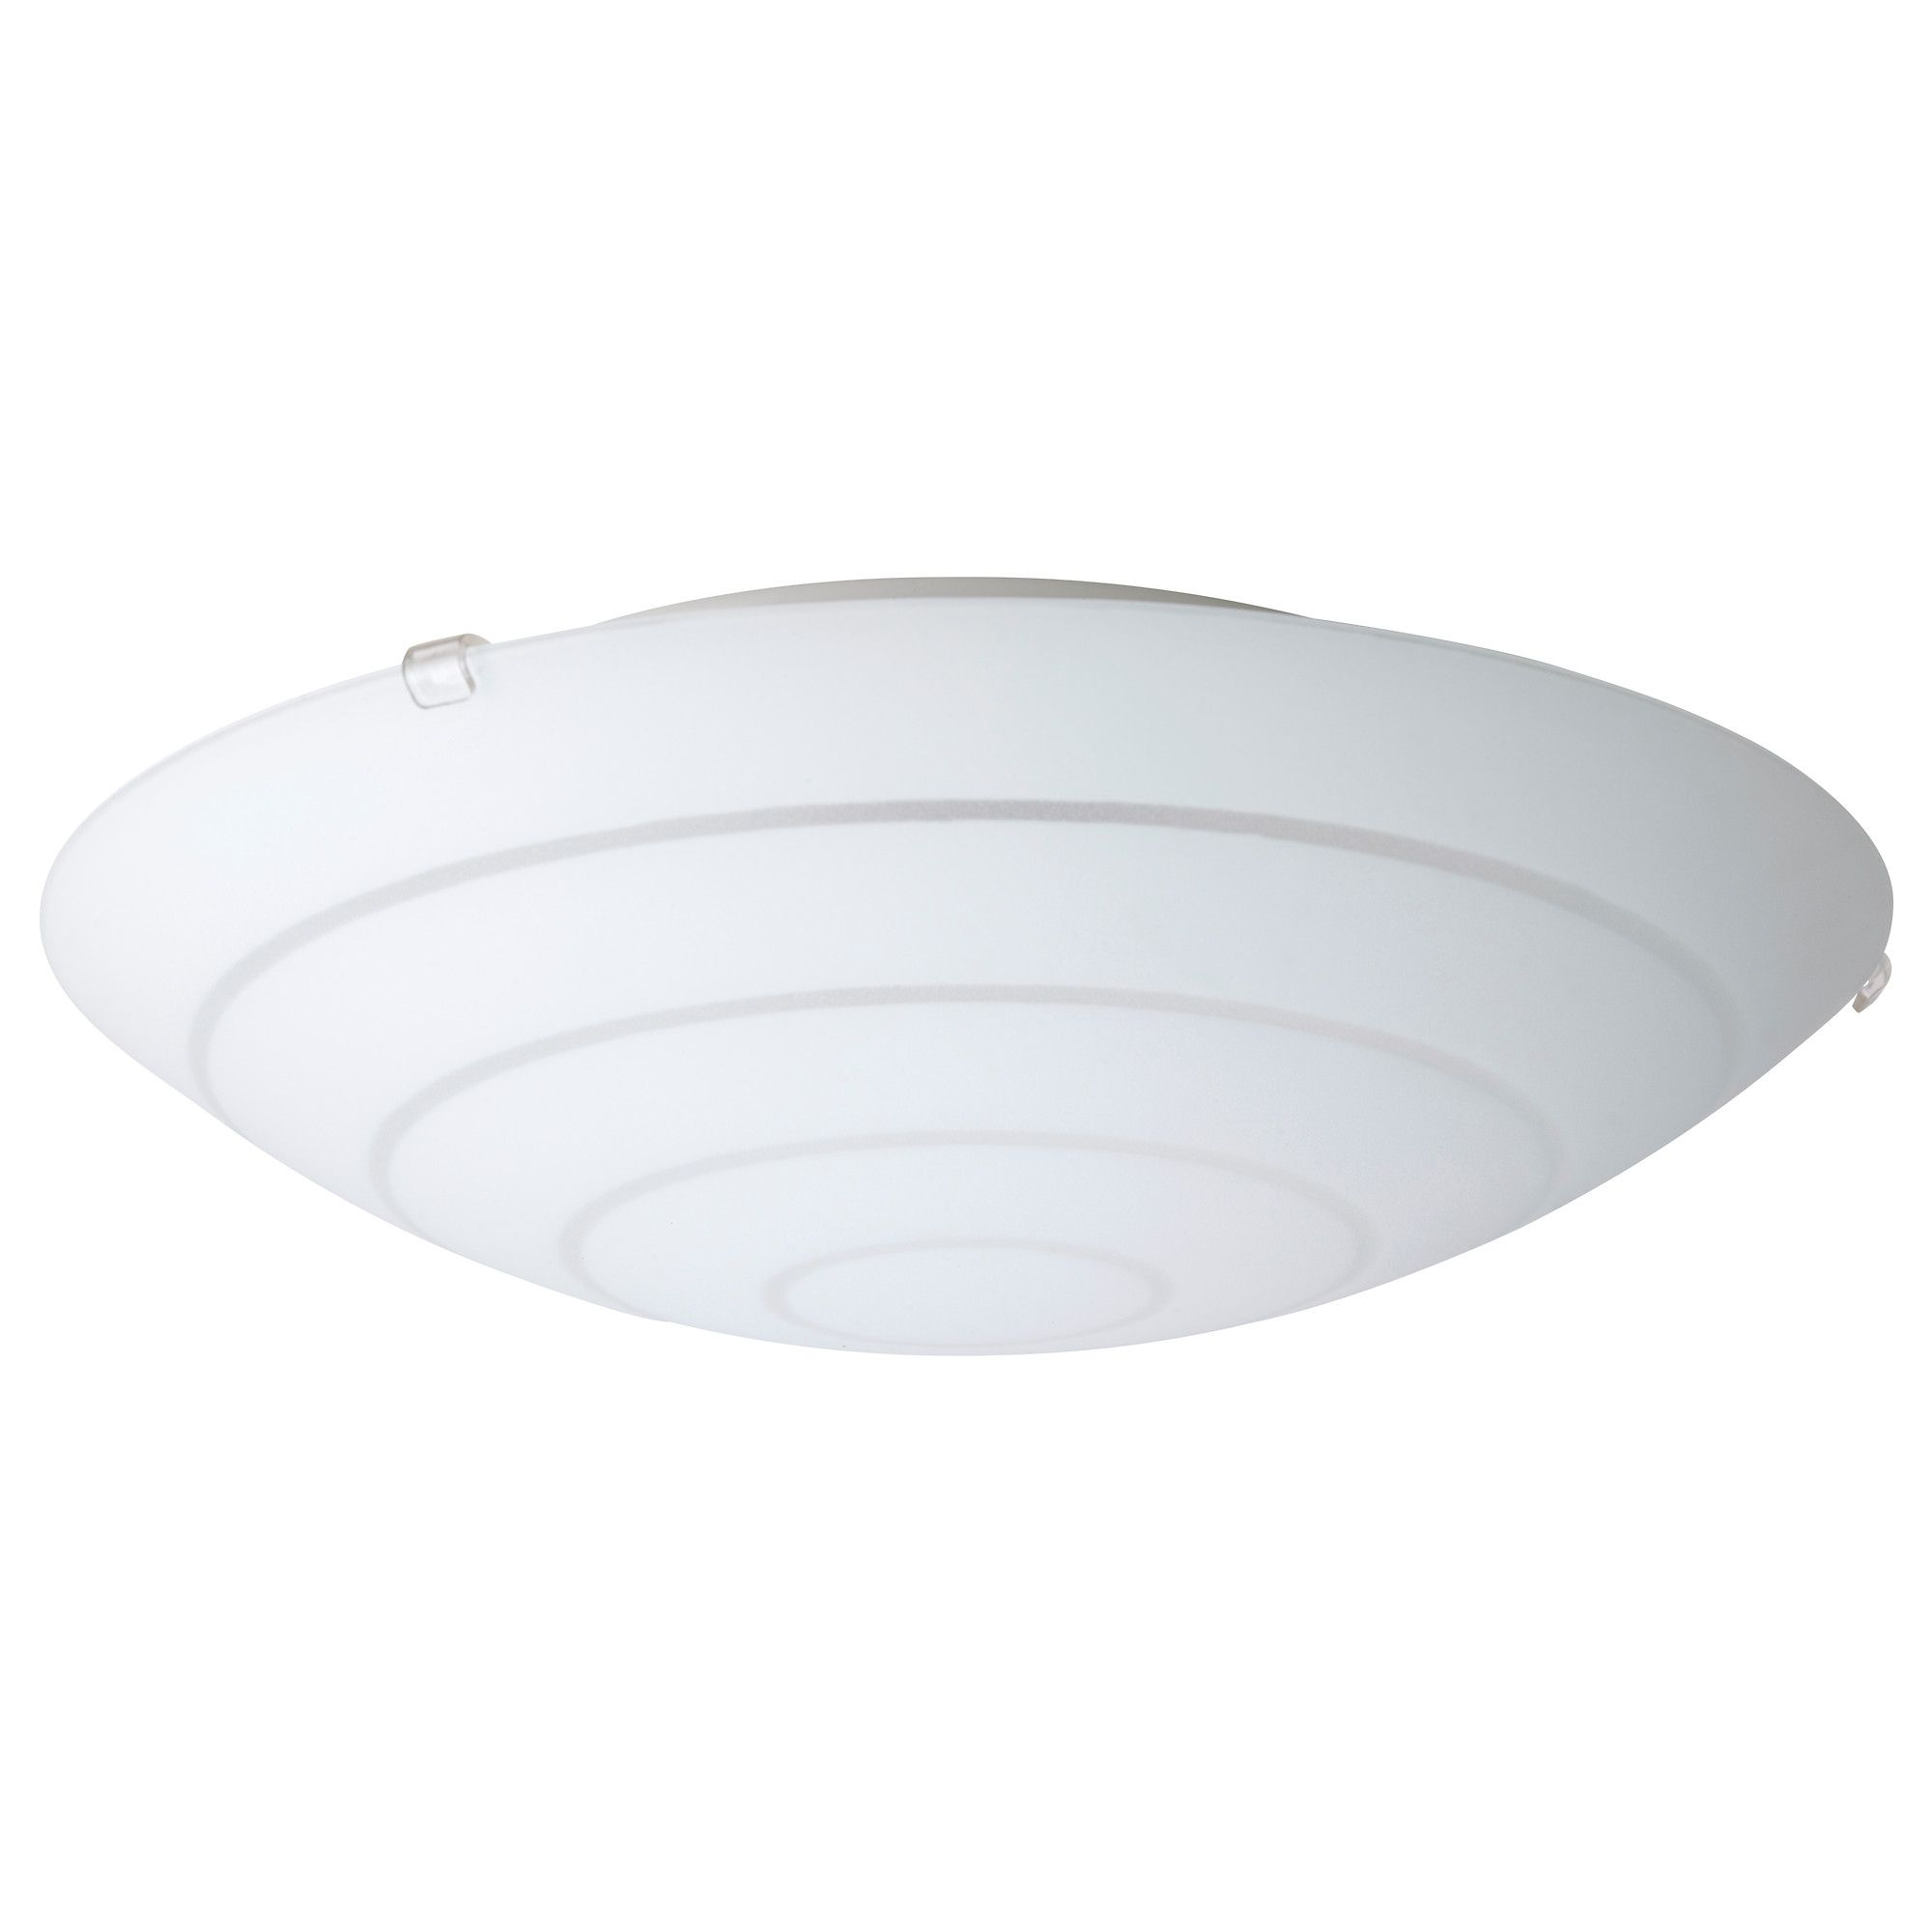 hyby ceiling lamp - ikea $13 hall basement, possibly office